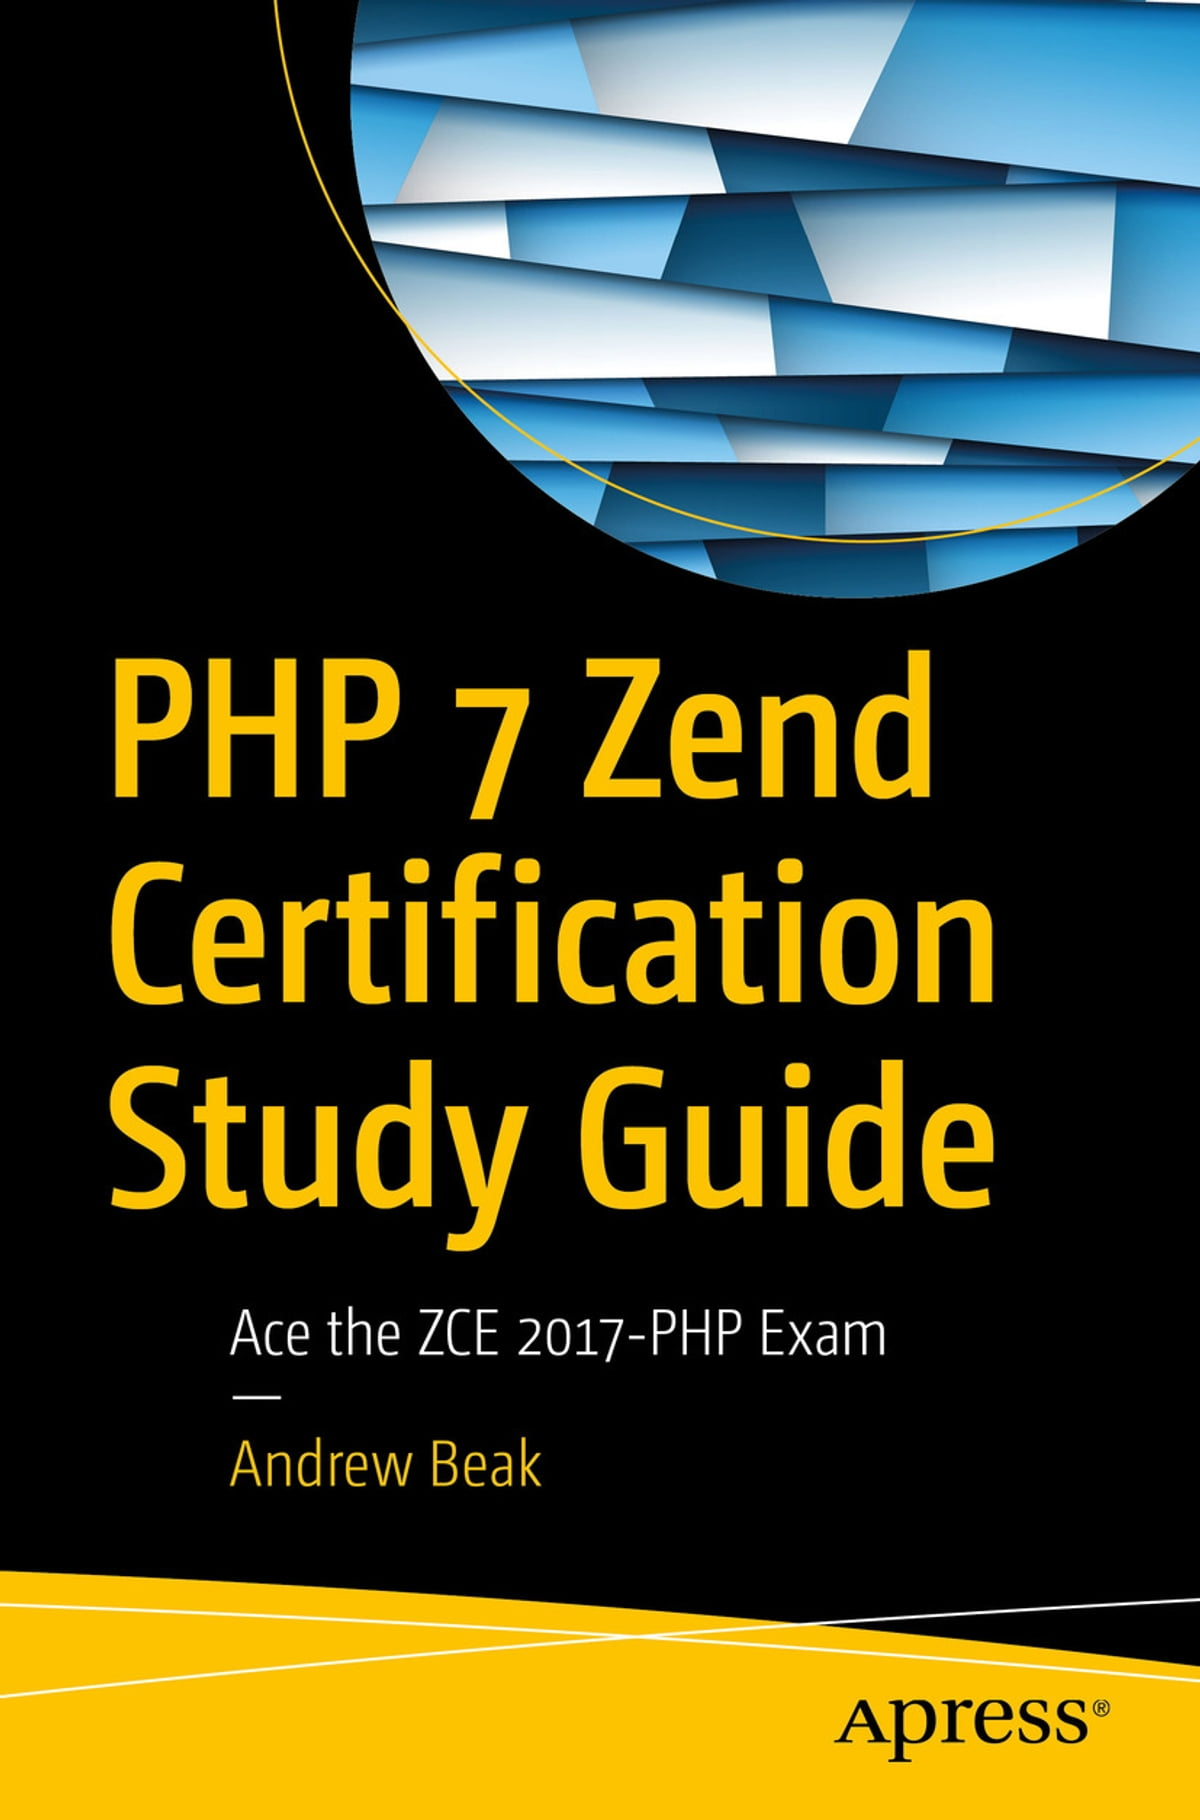 Php 7 Zend Certification Study Guide Ebook By Andrew Beak